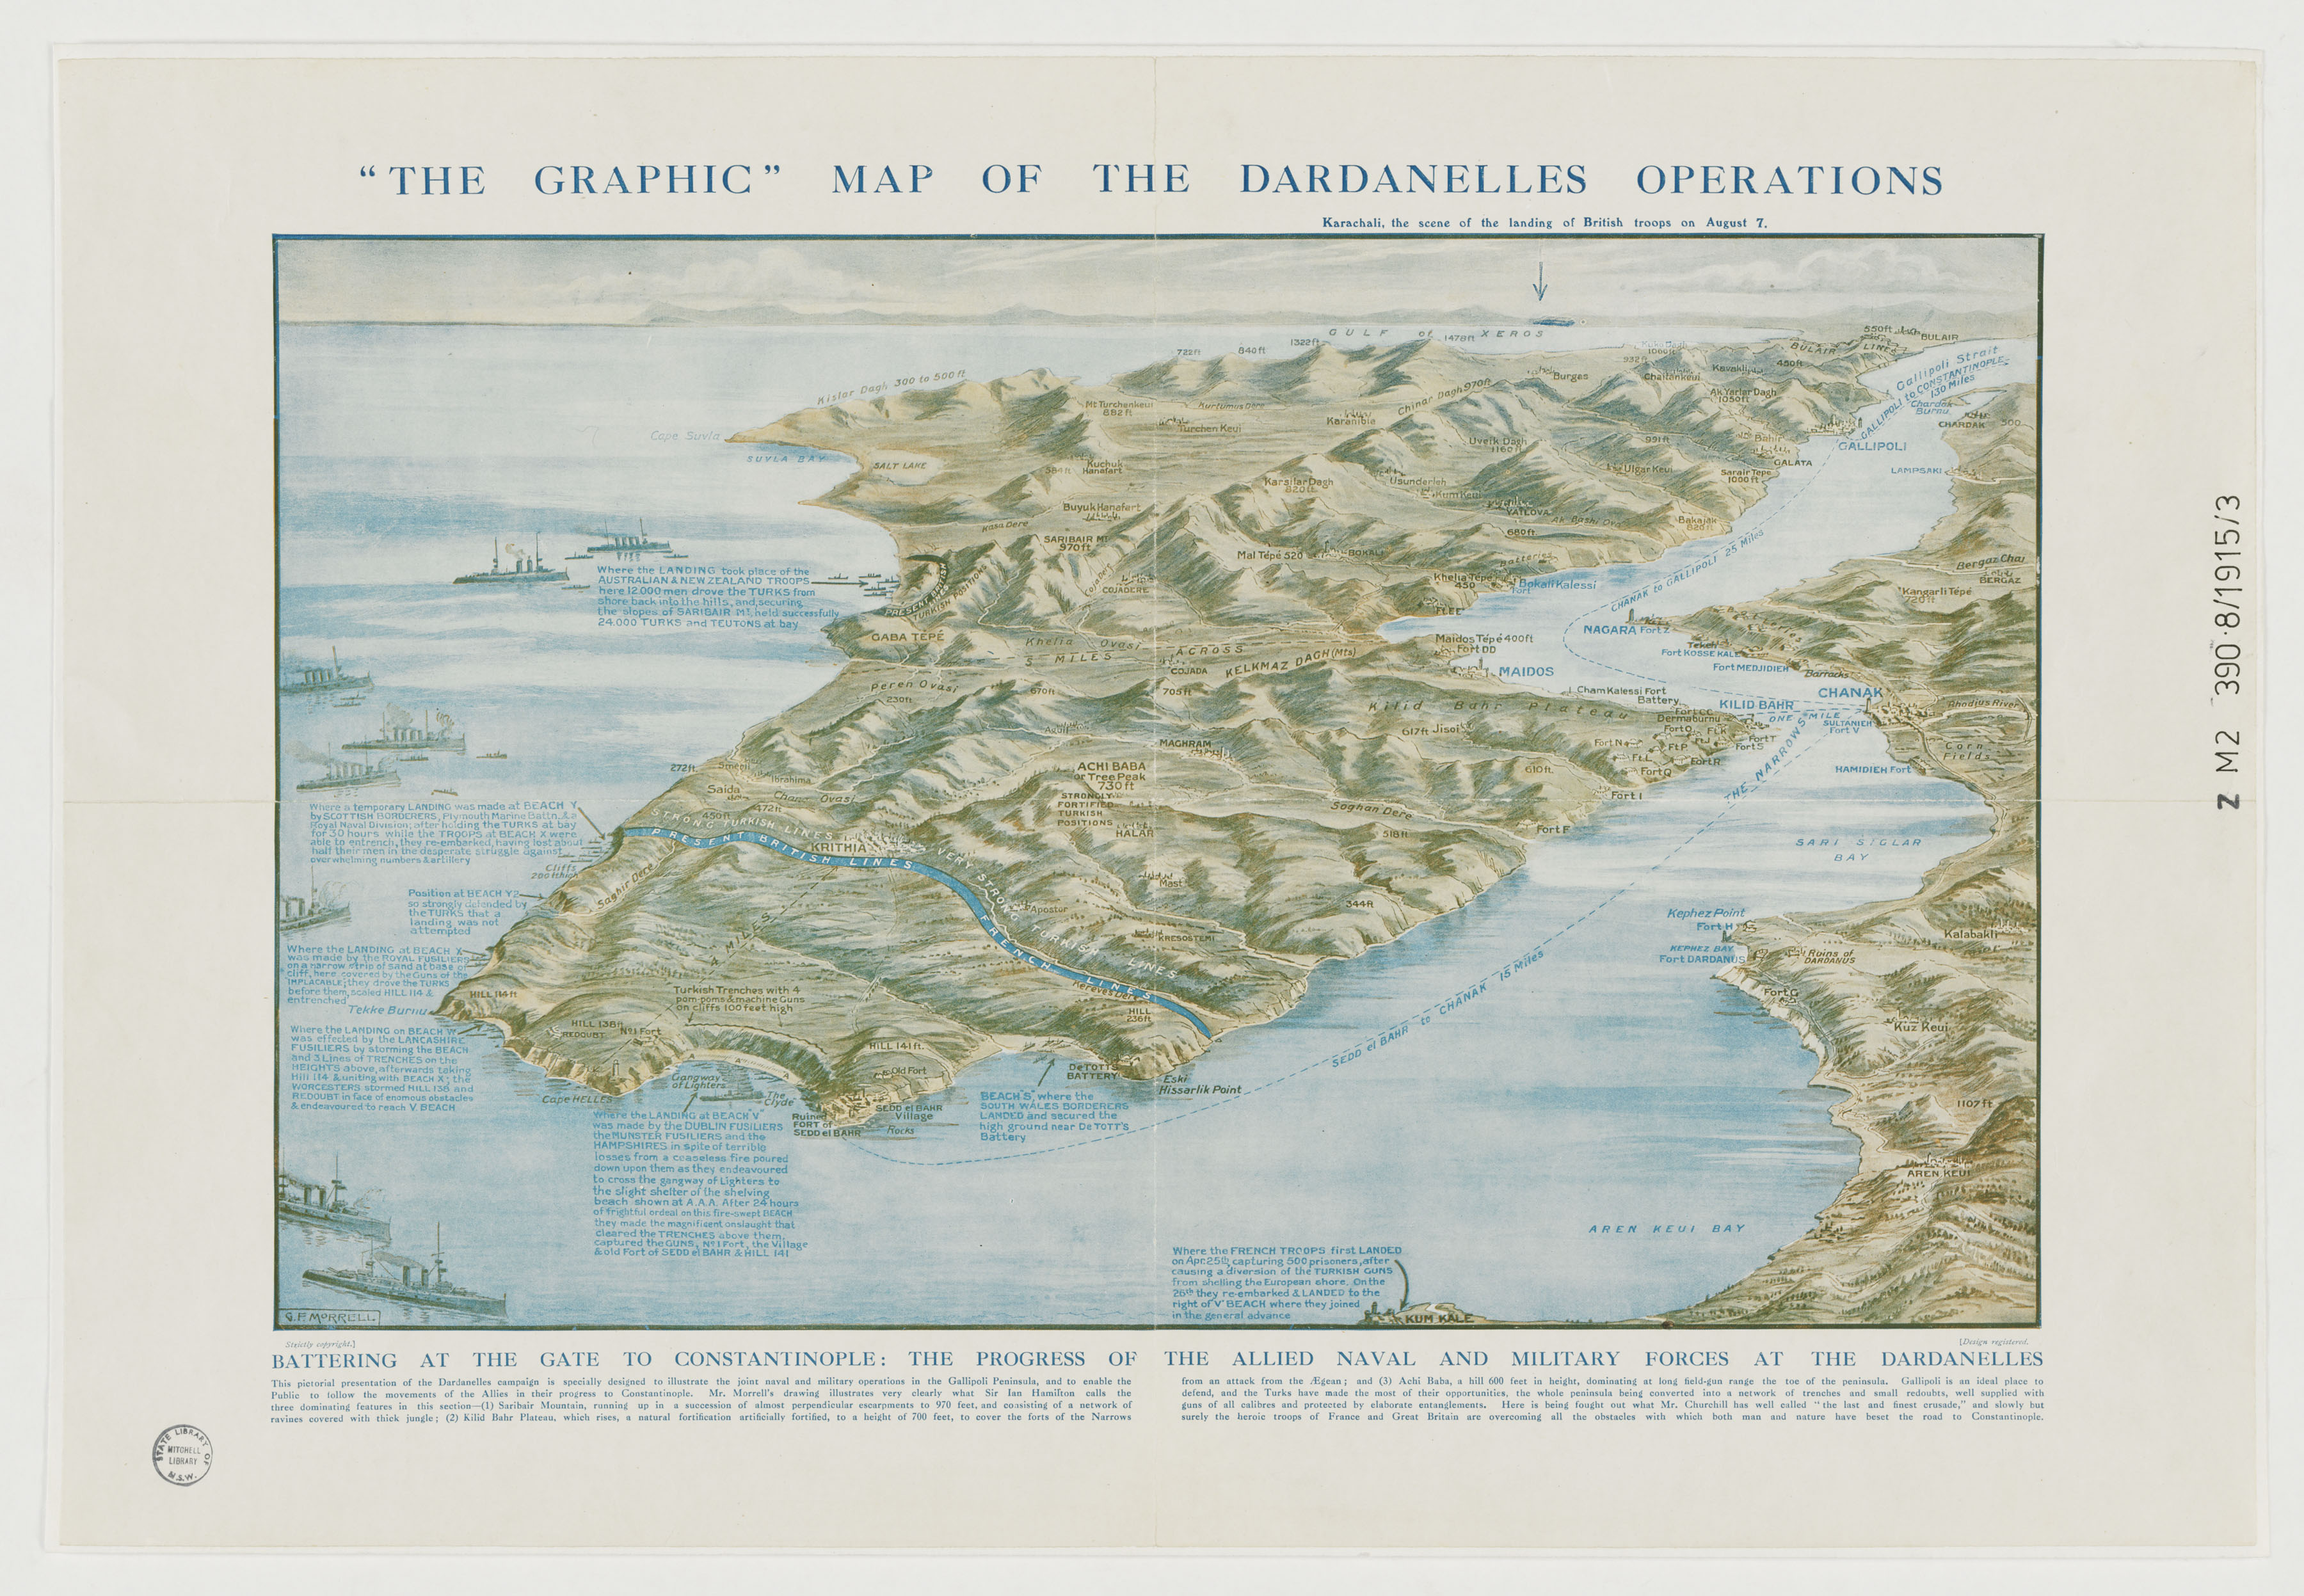 Map of the Dardanelles drawn by G.F. Morrell, 1915